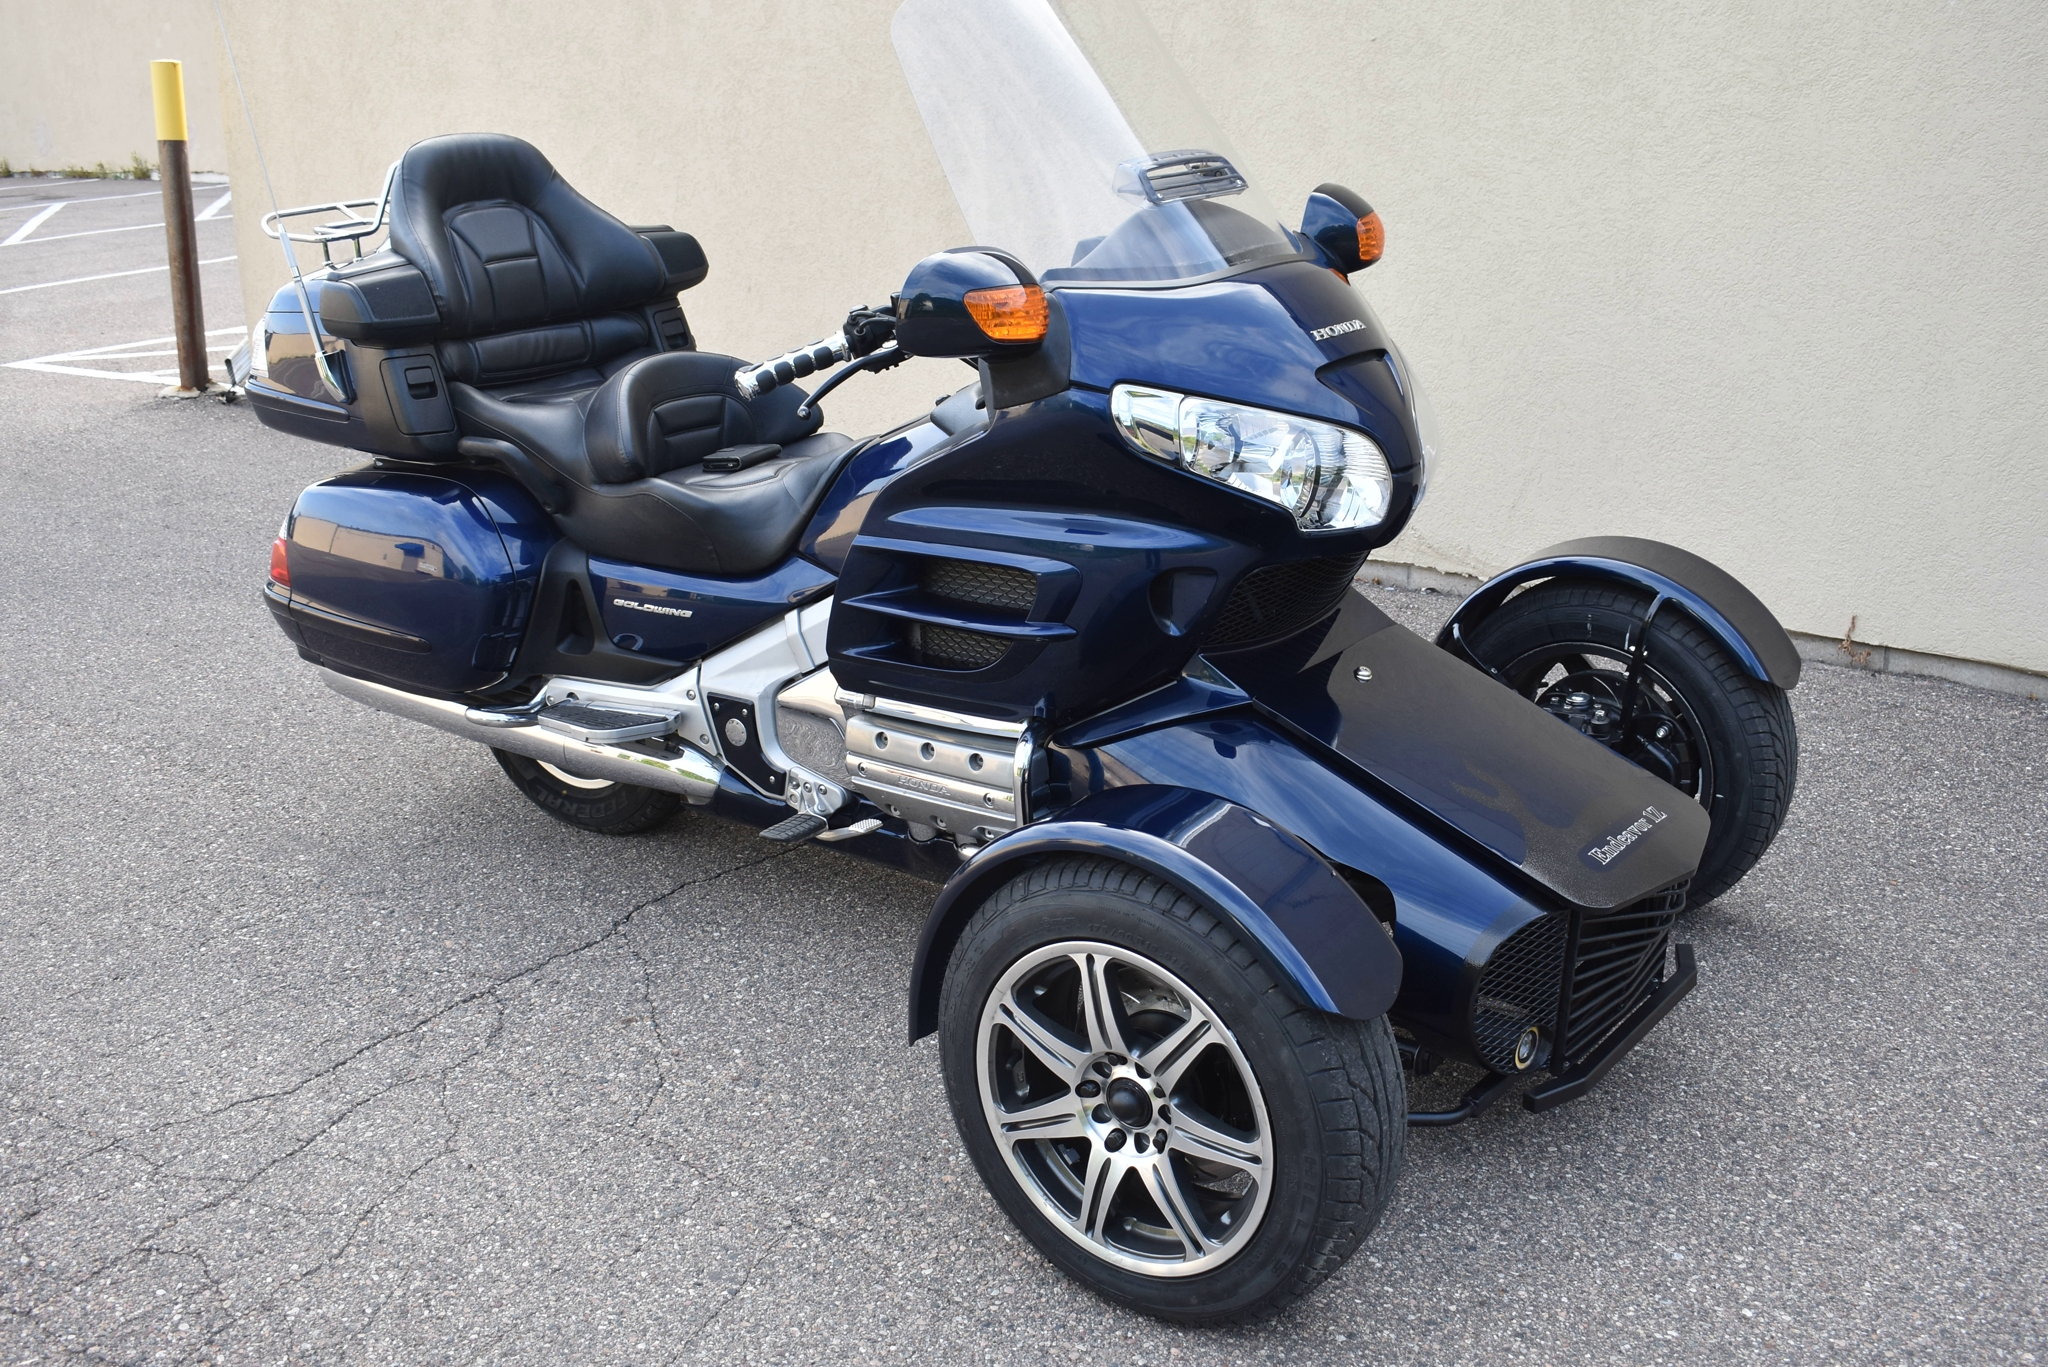 Completed Trikes For Sale - Endeavor Trikes Endeavor Trikes